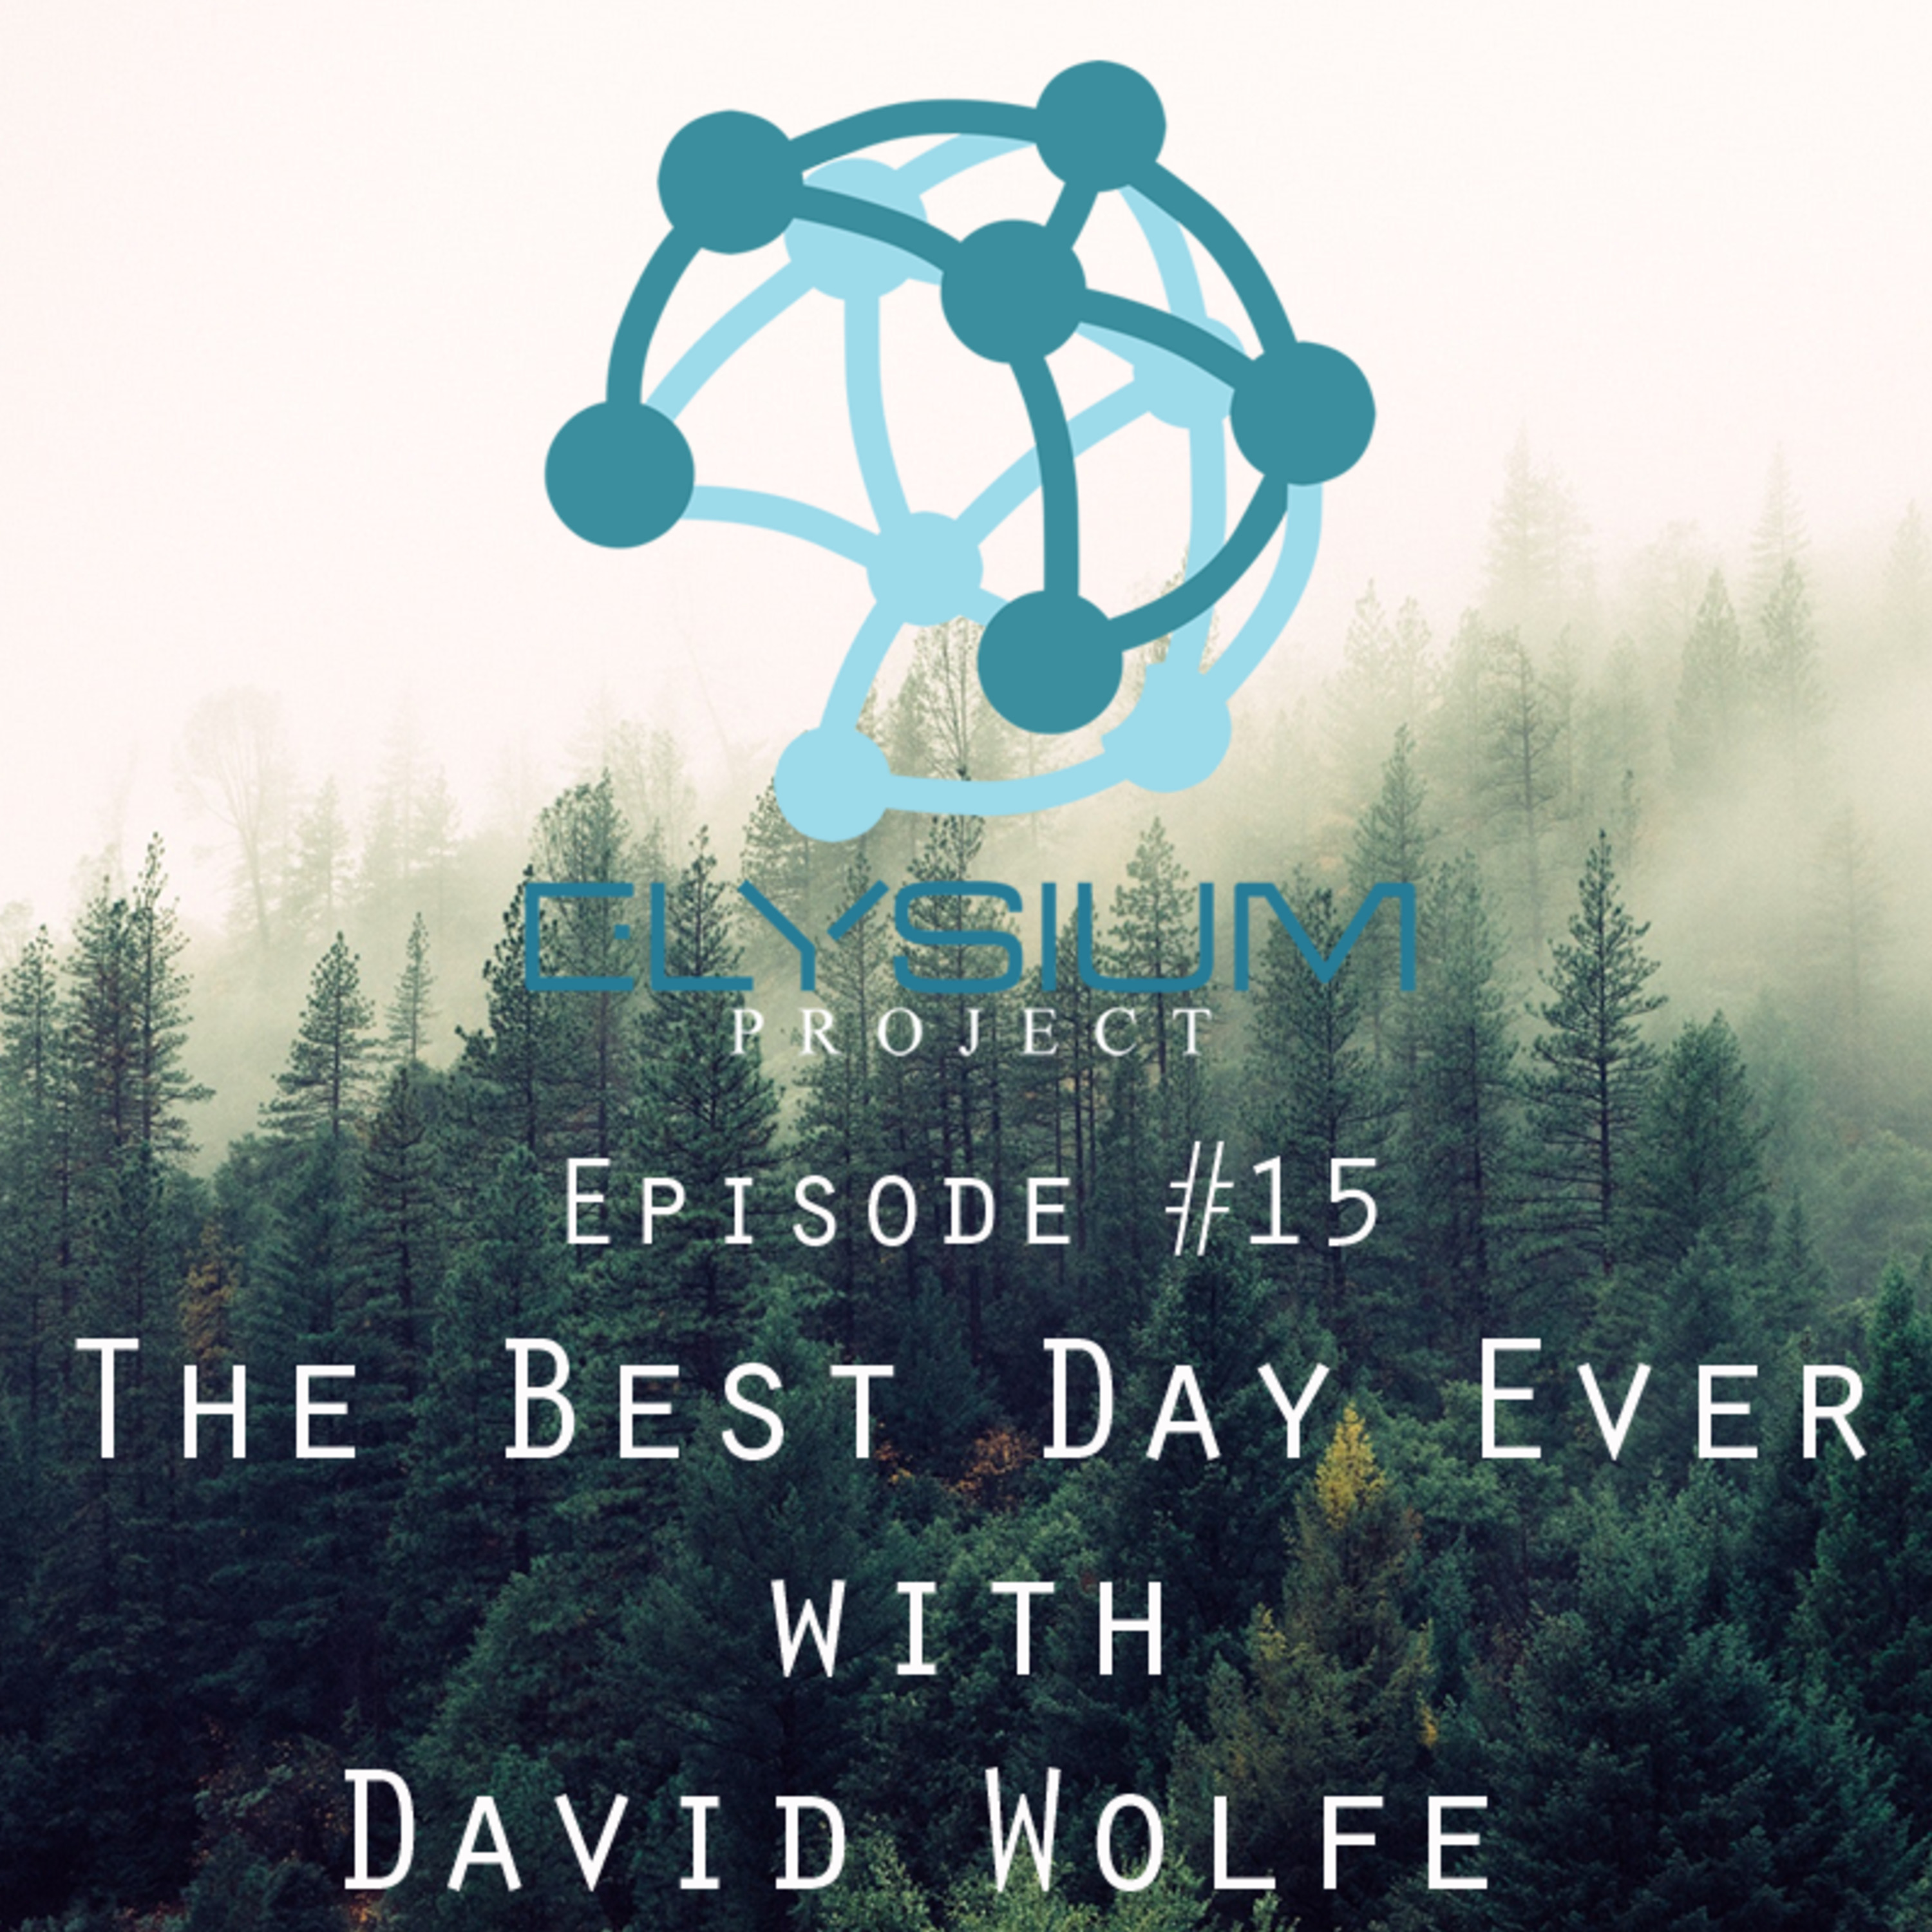 Episode 15: The Best Day Ever with David Wolfe